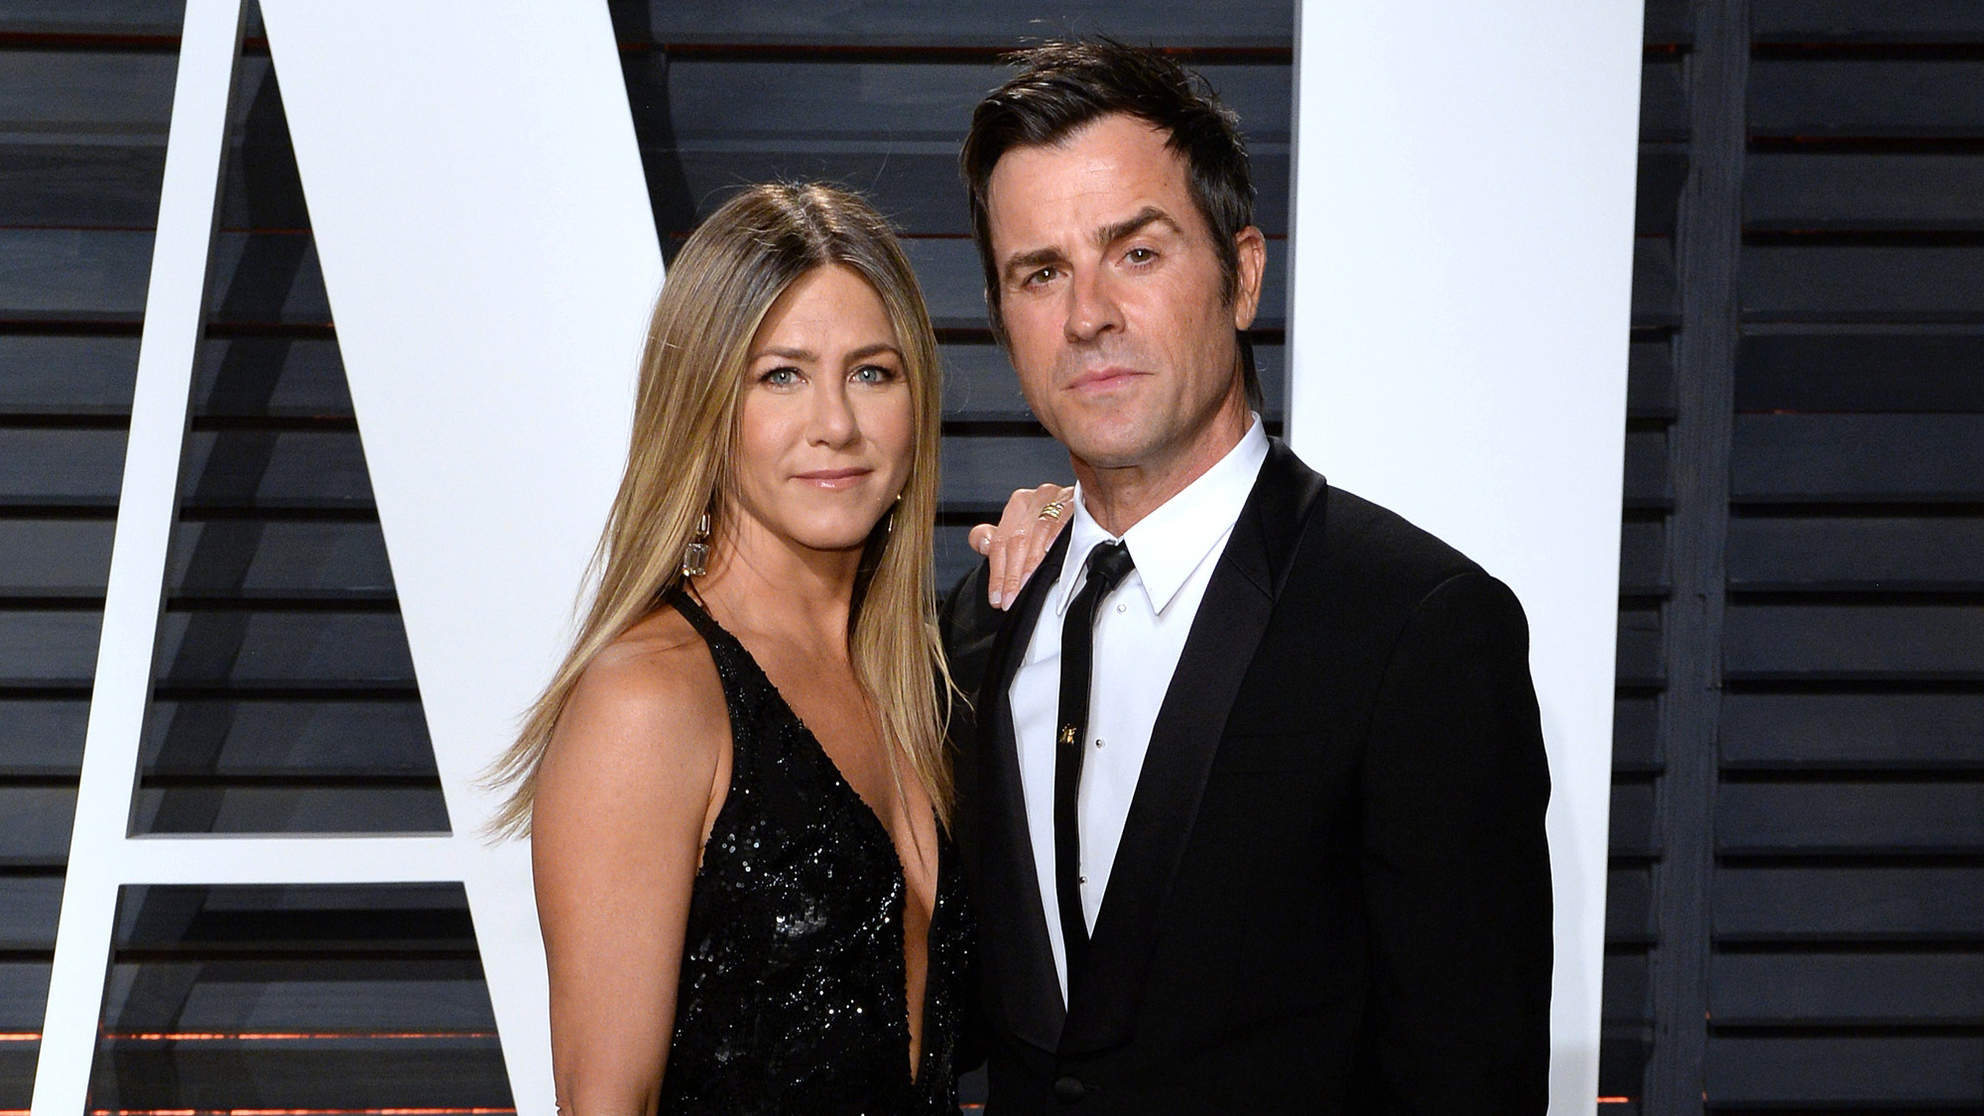 Jennifer Aniston and Justin Theroux Wanted to Start a Family Early in Relationship, Says Source